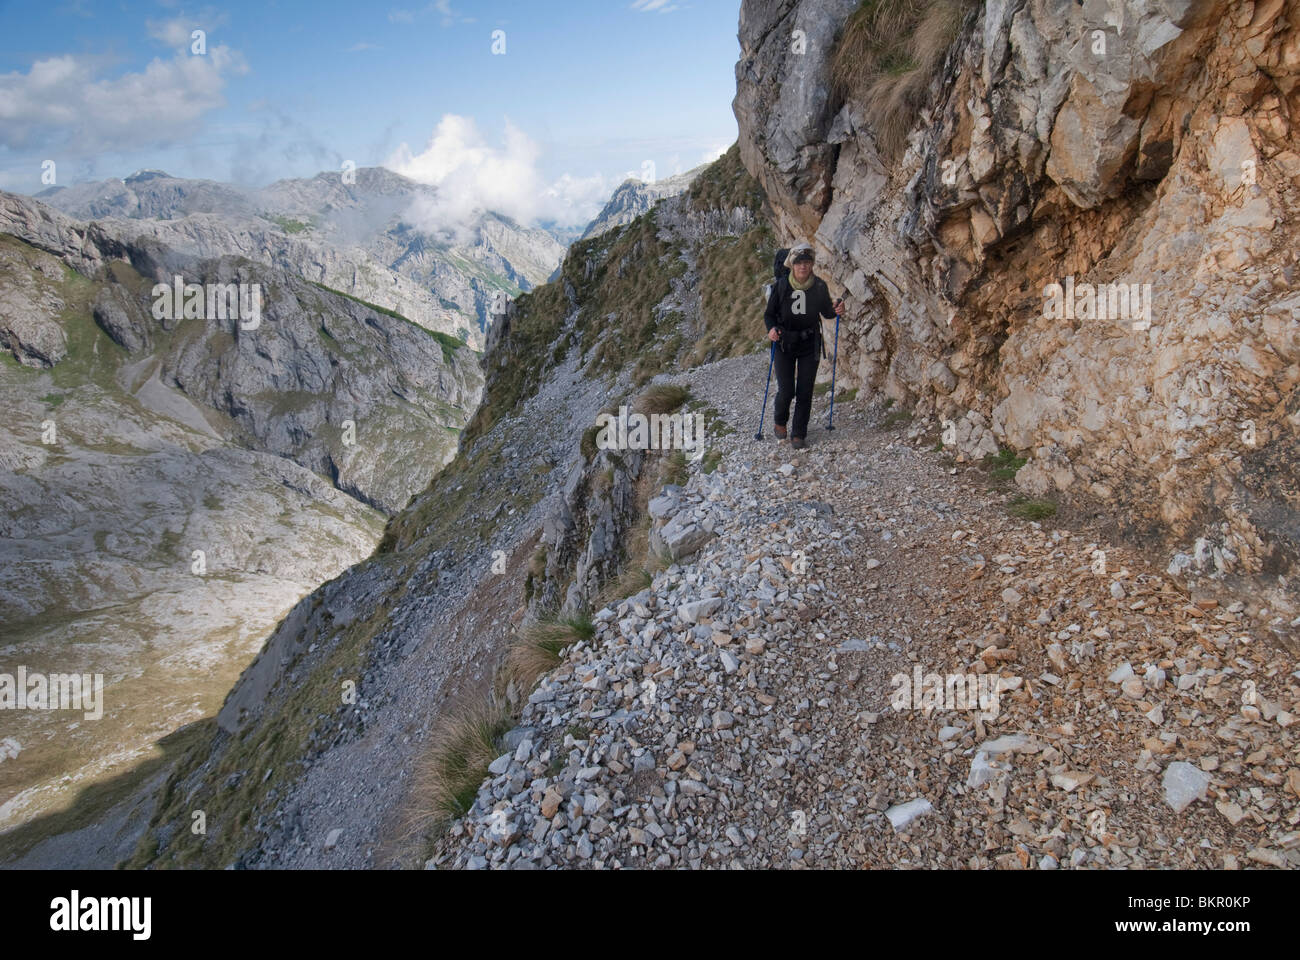 Walking in the Central Massif, Picos de Europa, Spain - Stock Image